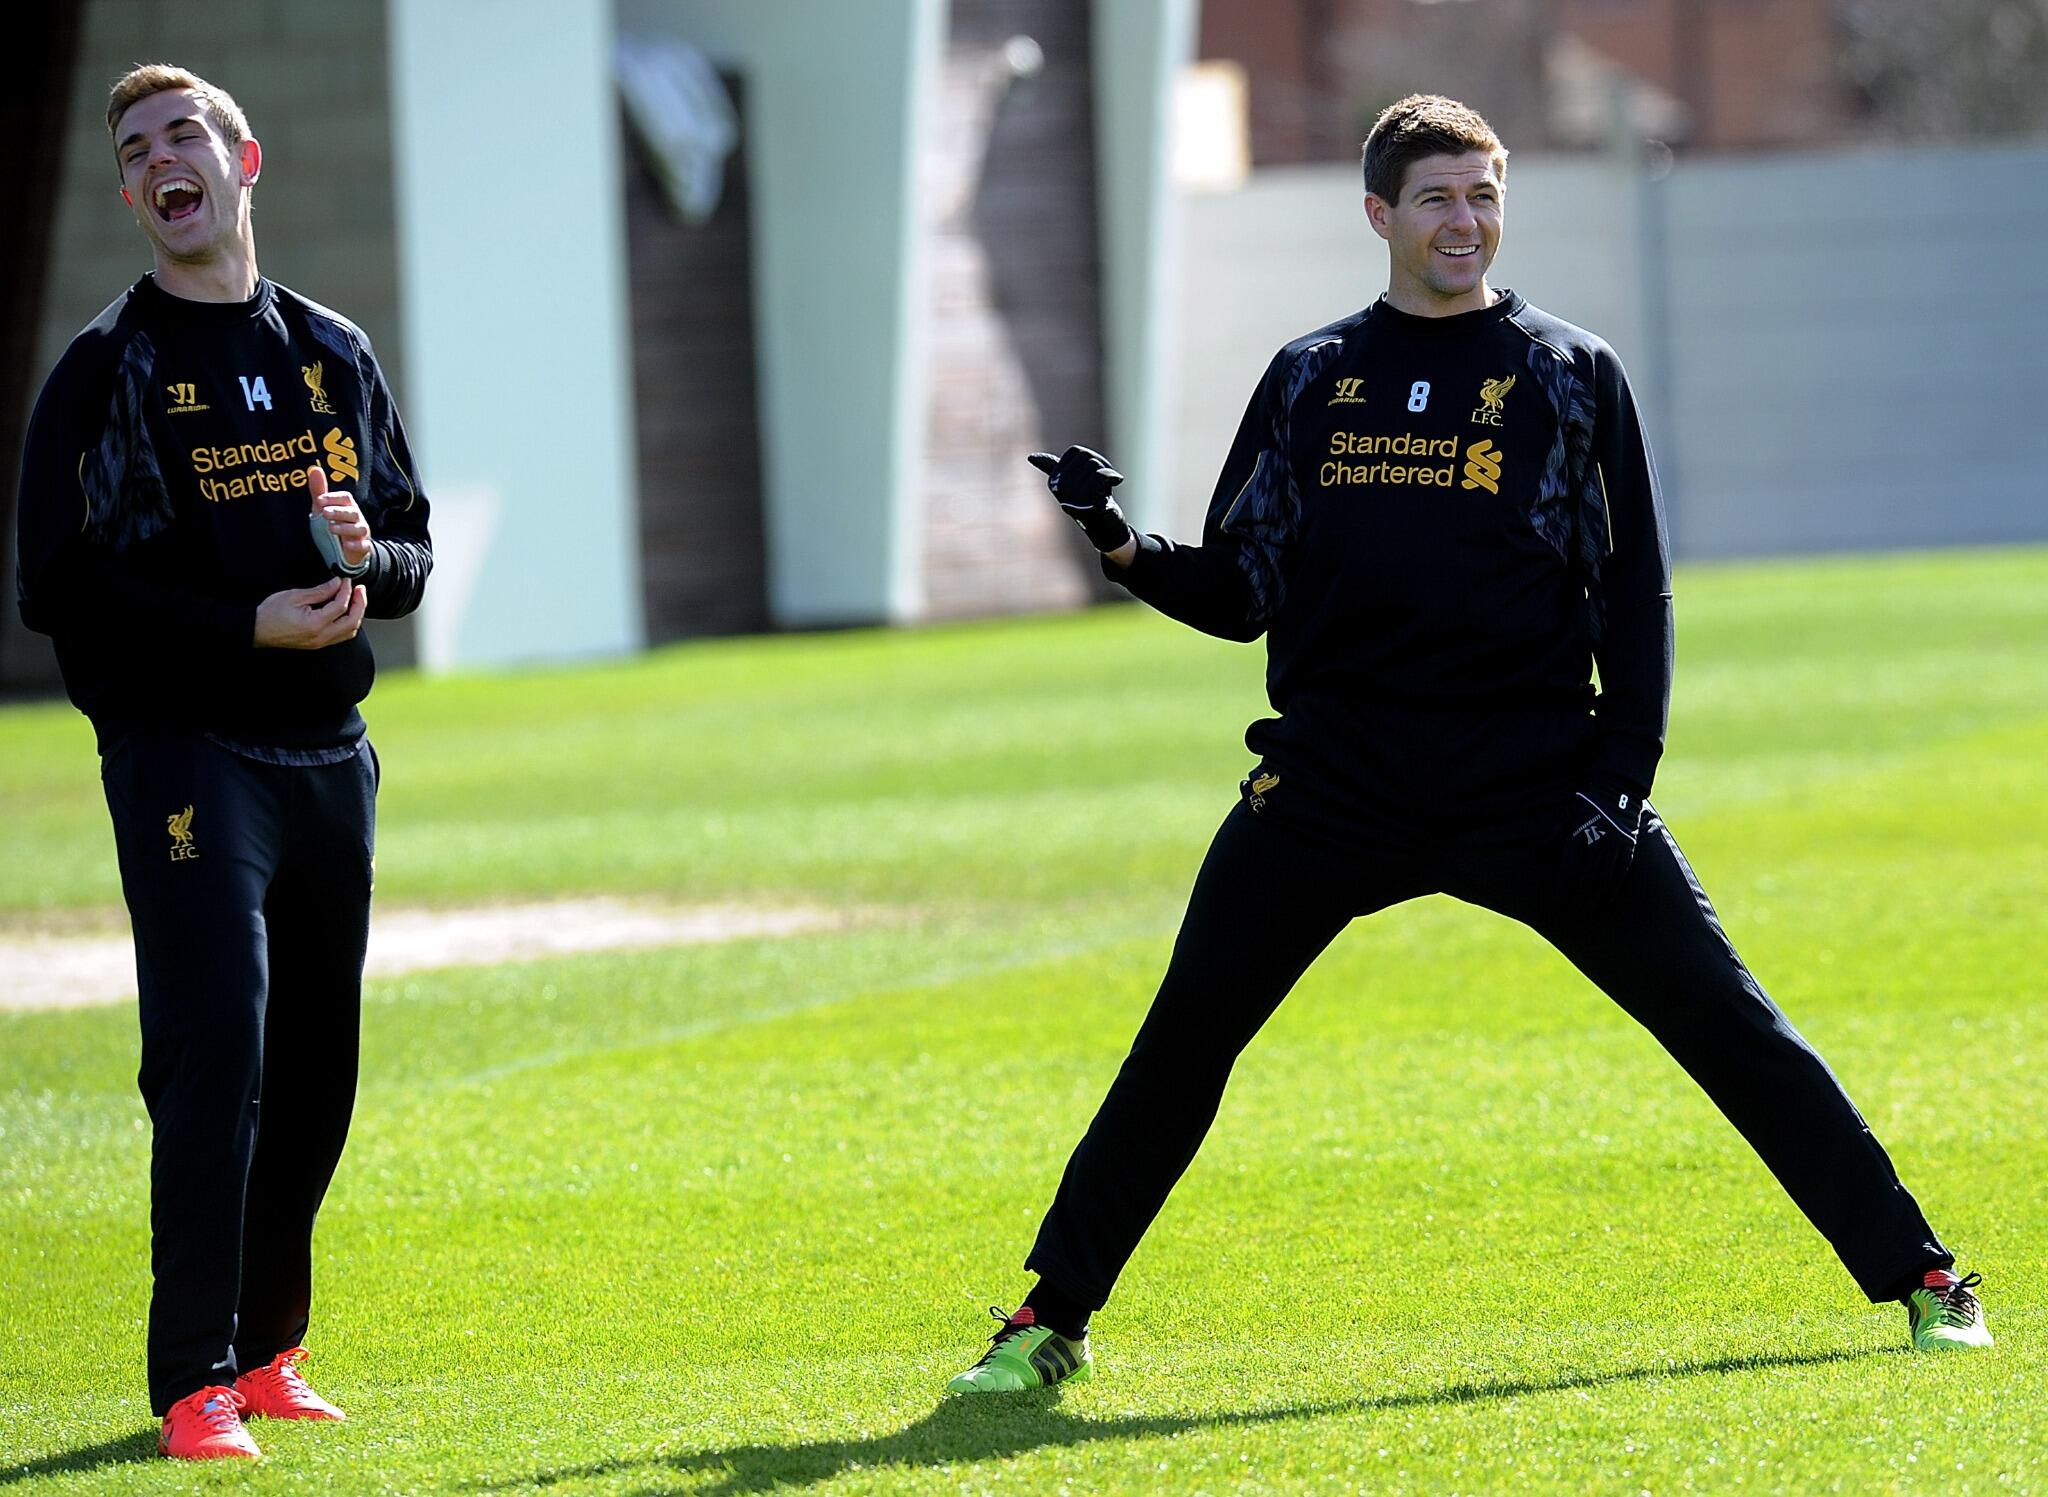 PHOTO: Stevie G and Jordan Henderson share a joke at Melwood earlier today #LFC http://t.co/Az8JzIO1Ip